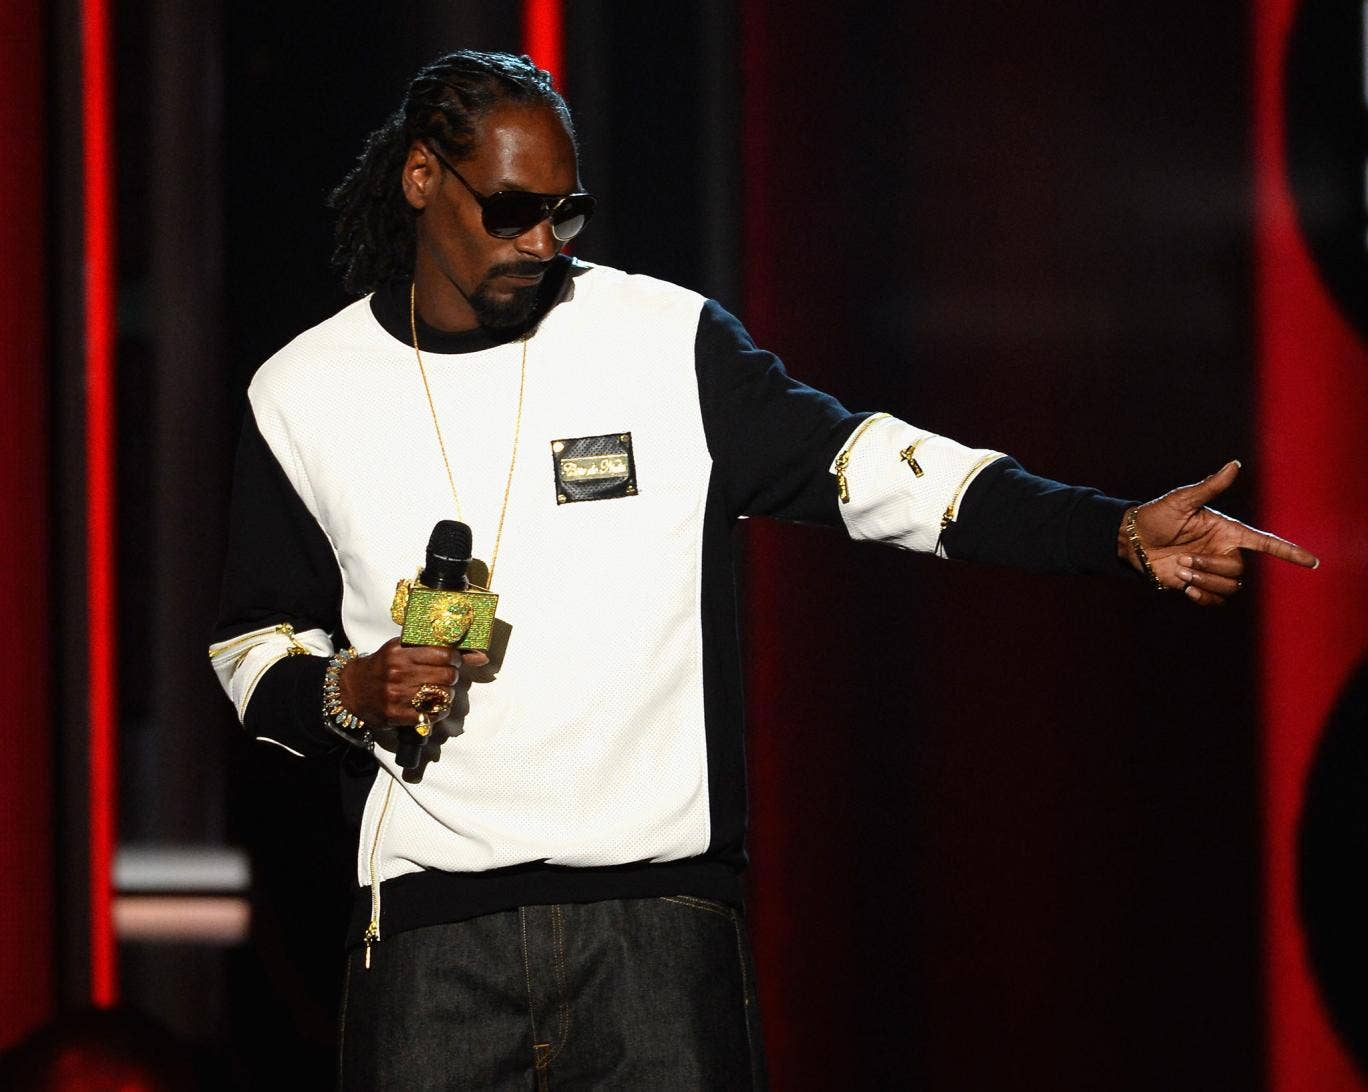 Snoop Dogg speaks onstage during the 2014 Billboard Music Awards at the MGM Grand Garden Arena on 18 May, 2014, in Las Vegas, Nevada